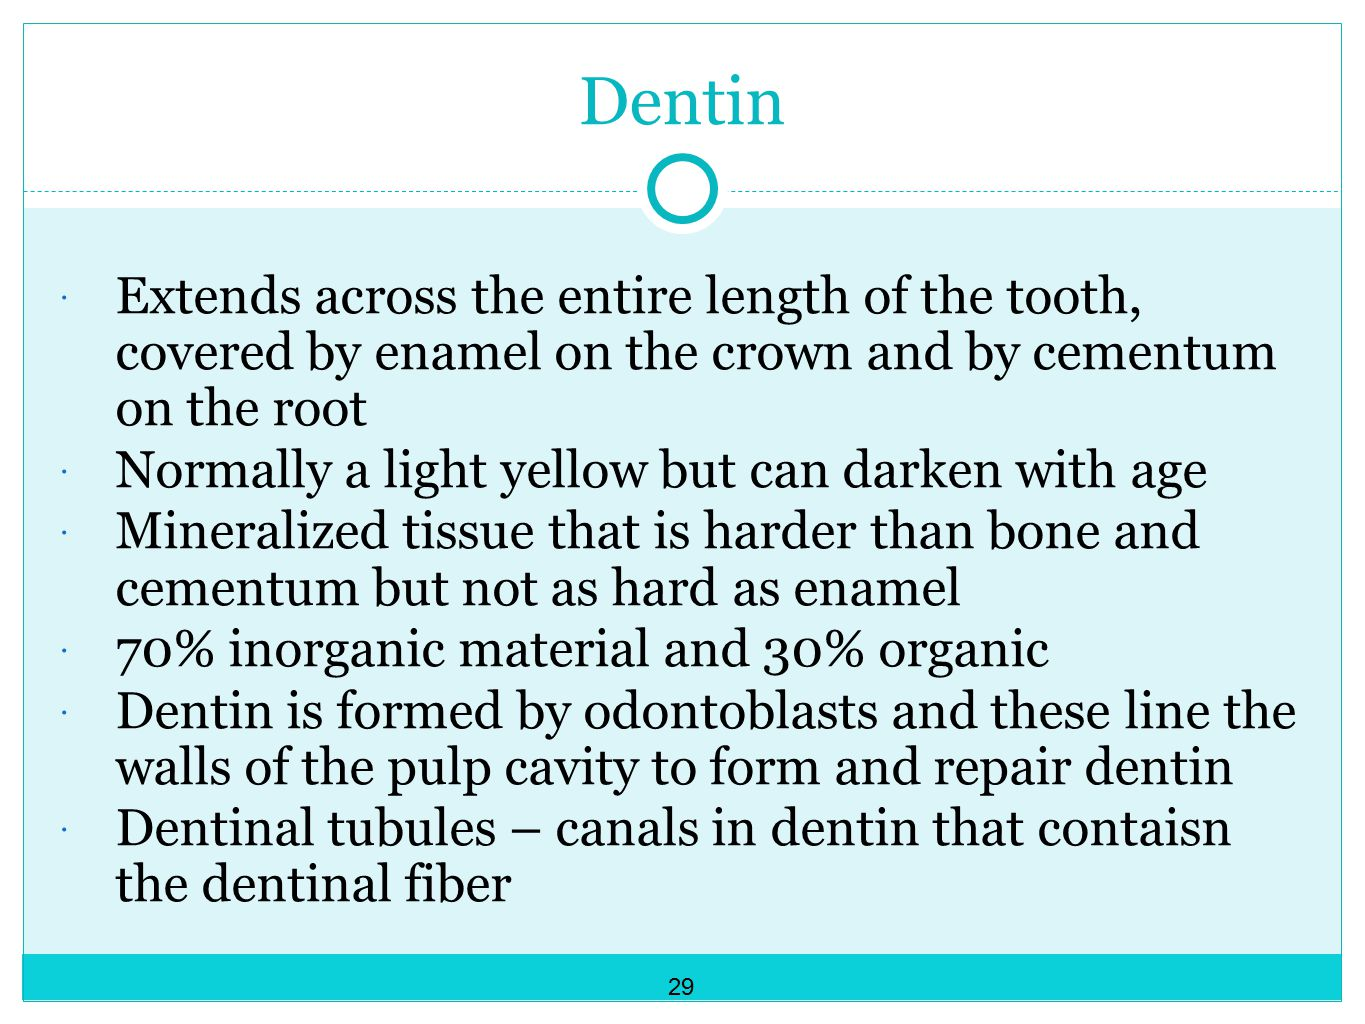 Dentin  Extends across the entire length of the tooth, covered by enamel on the crown and by cementum on the root  Normally a light yellow but can darken with age  Mineralized tissue that is harder than bone and cementum but not as hard as enamel  70% inorganic material and 30% organic  Dentin is formed by odontoblasts and these line the walls of the pulp cavity to form and repair dentin  Dentinal tubules – canals in dentin that contaisn the dentinal fiber 29